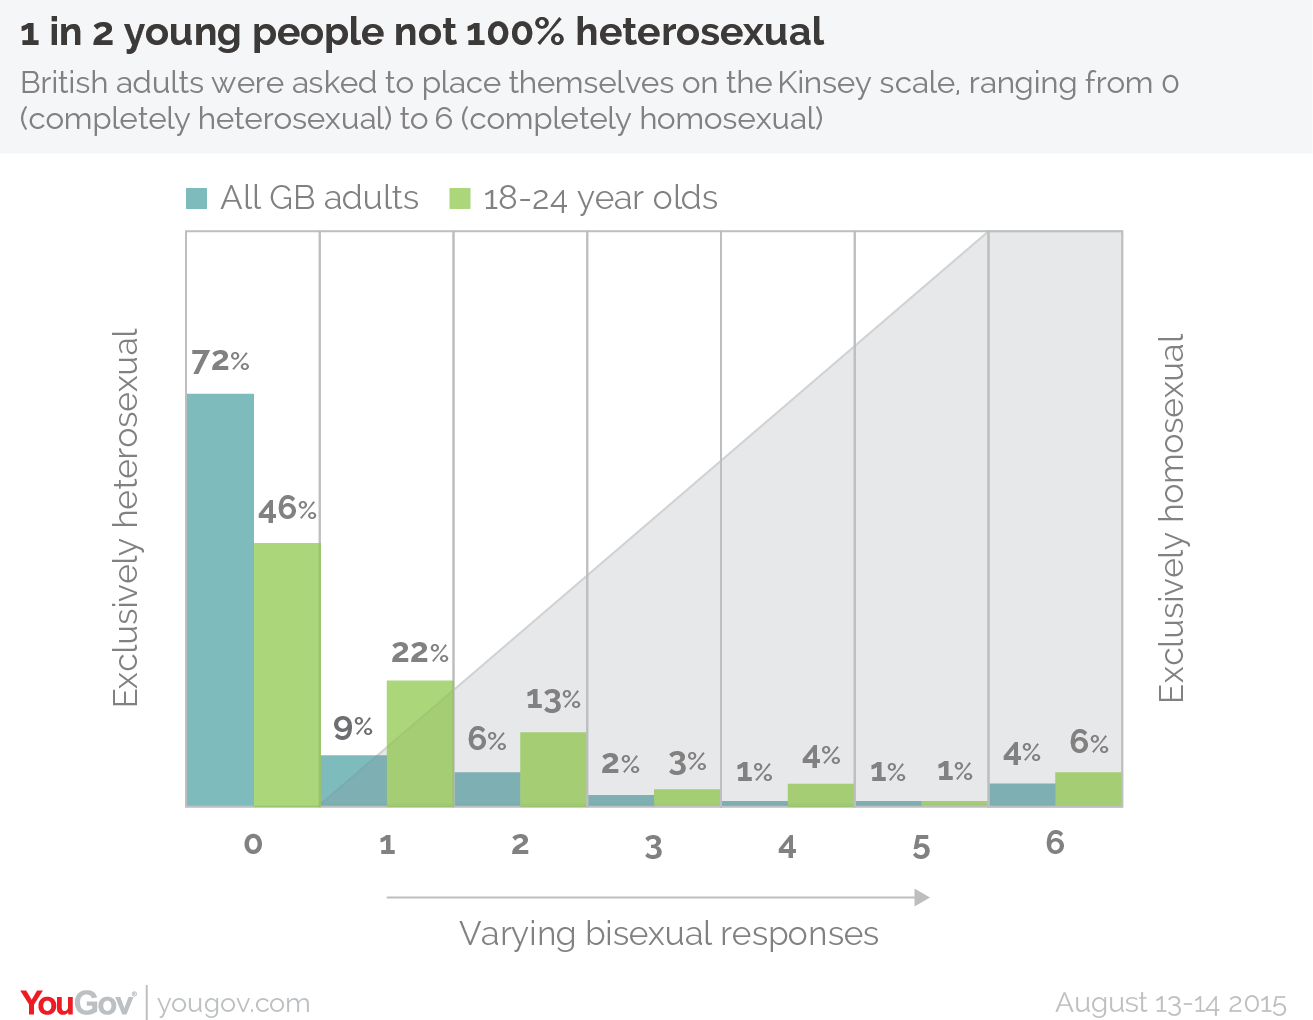 Half Of Young People In The UK Are Not 100% Heterosexual UNILAD yougov gay 12